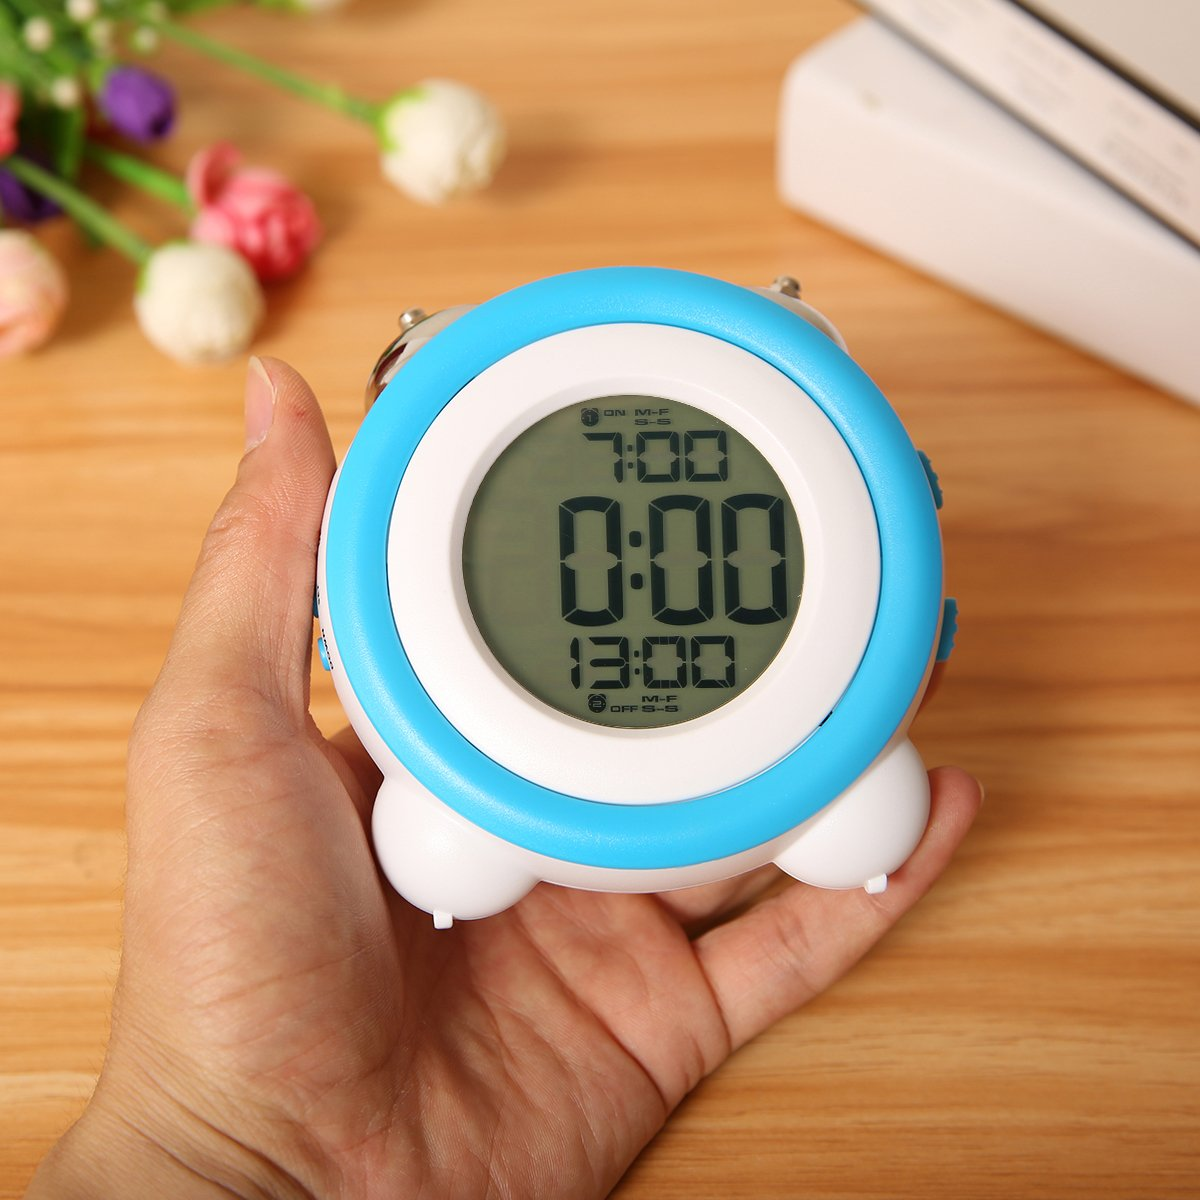 Jeteven Digital Twin Bell Alarm Clock Bedside Travel Clock with Temperature Display, Snooze Function LED Night Light Battery Operated for Heavy Sleepers Light Blue